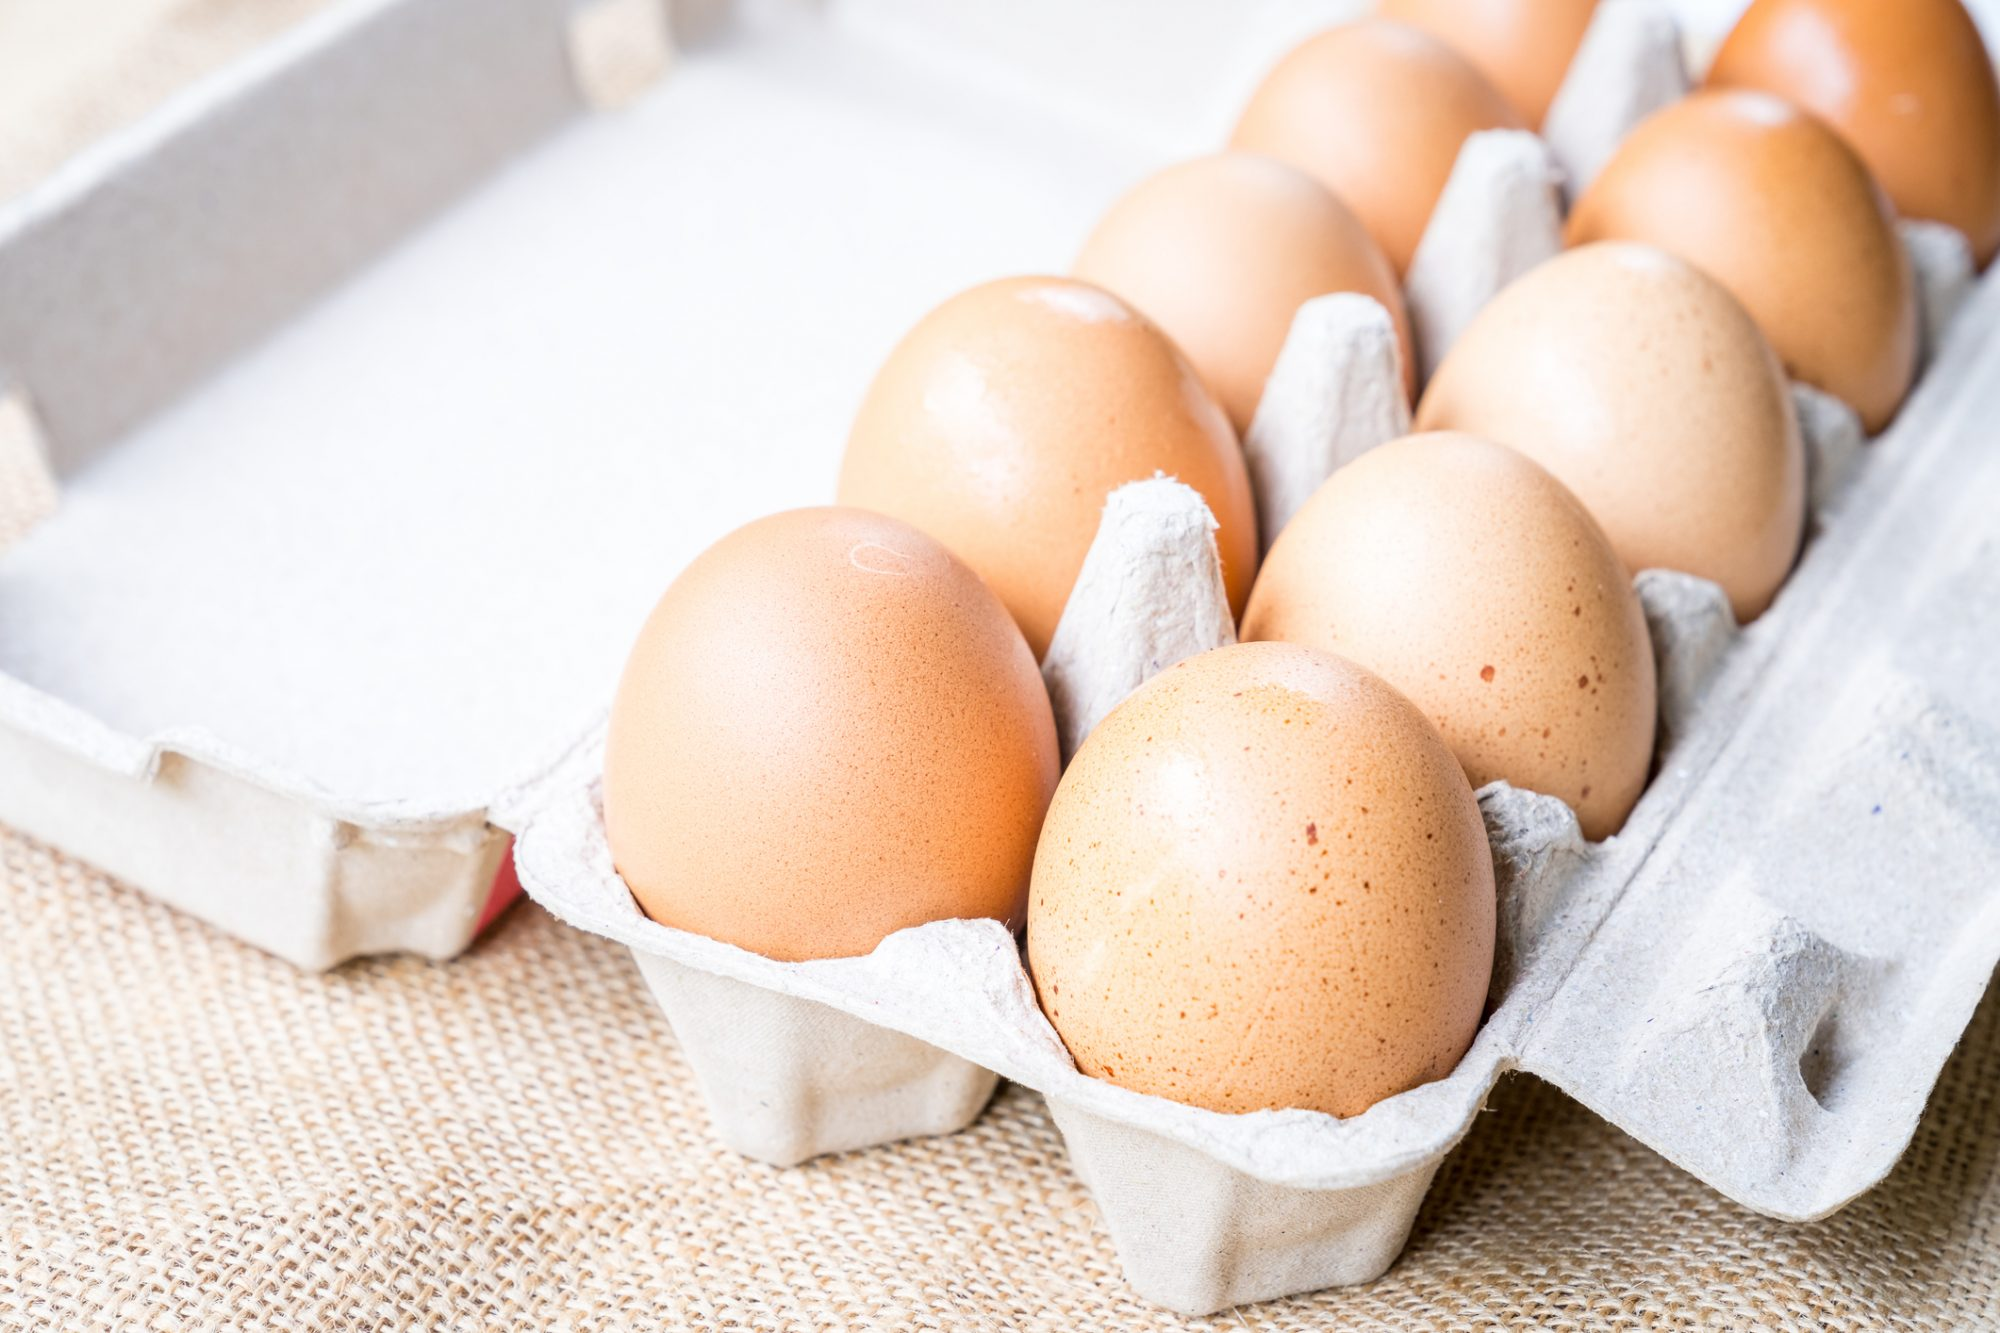 What Size Eggs Should You Use for Baking?